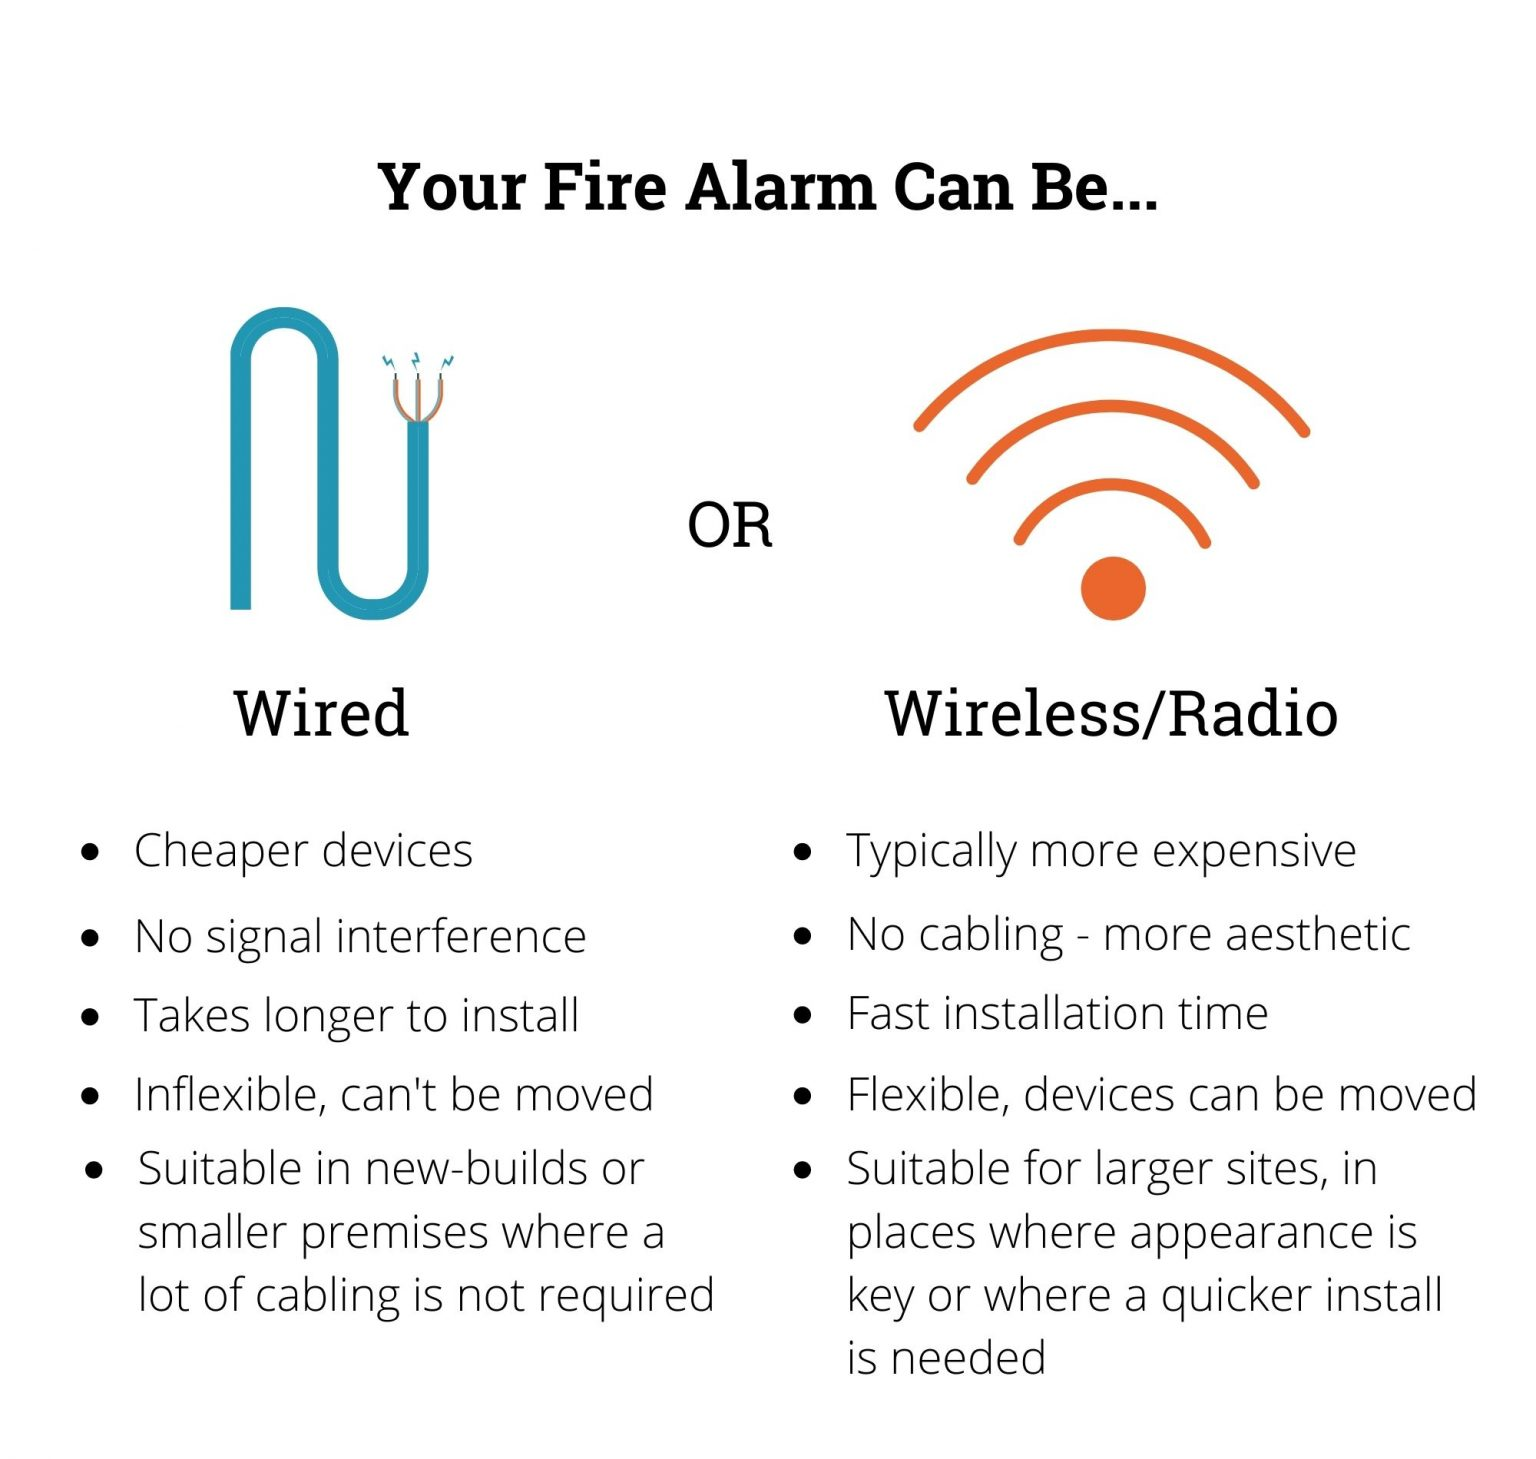 Diagram of a wire and a wifi symbol to demonstrate wired and wireless fire alarms